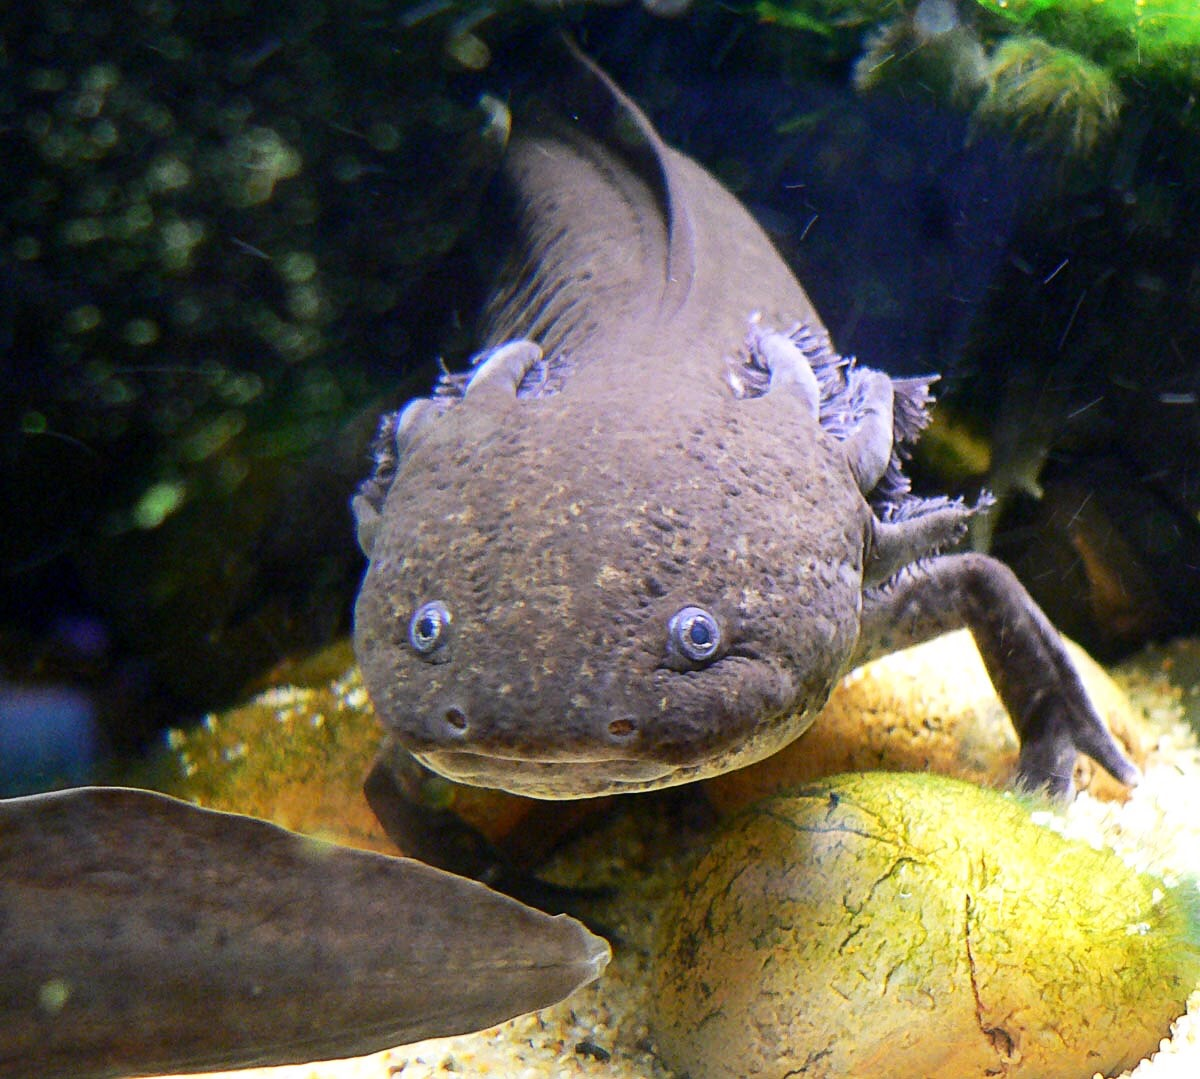 The Endangered Axolotl and Its Powers of Regeneration